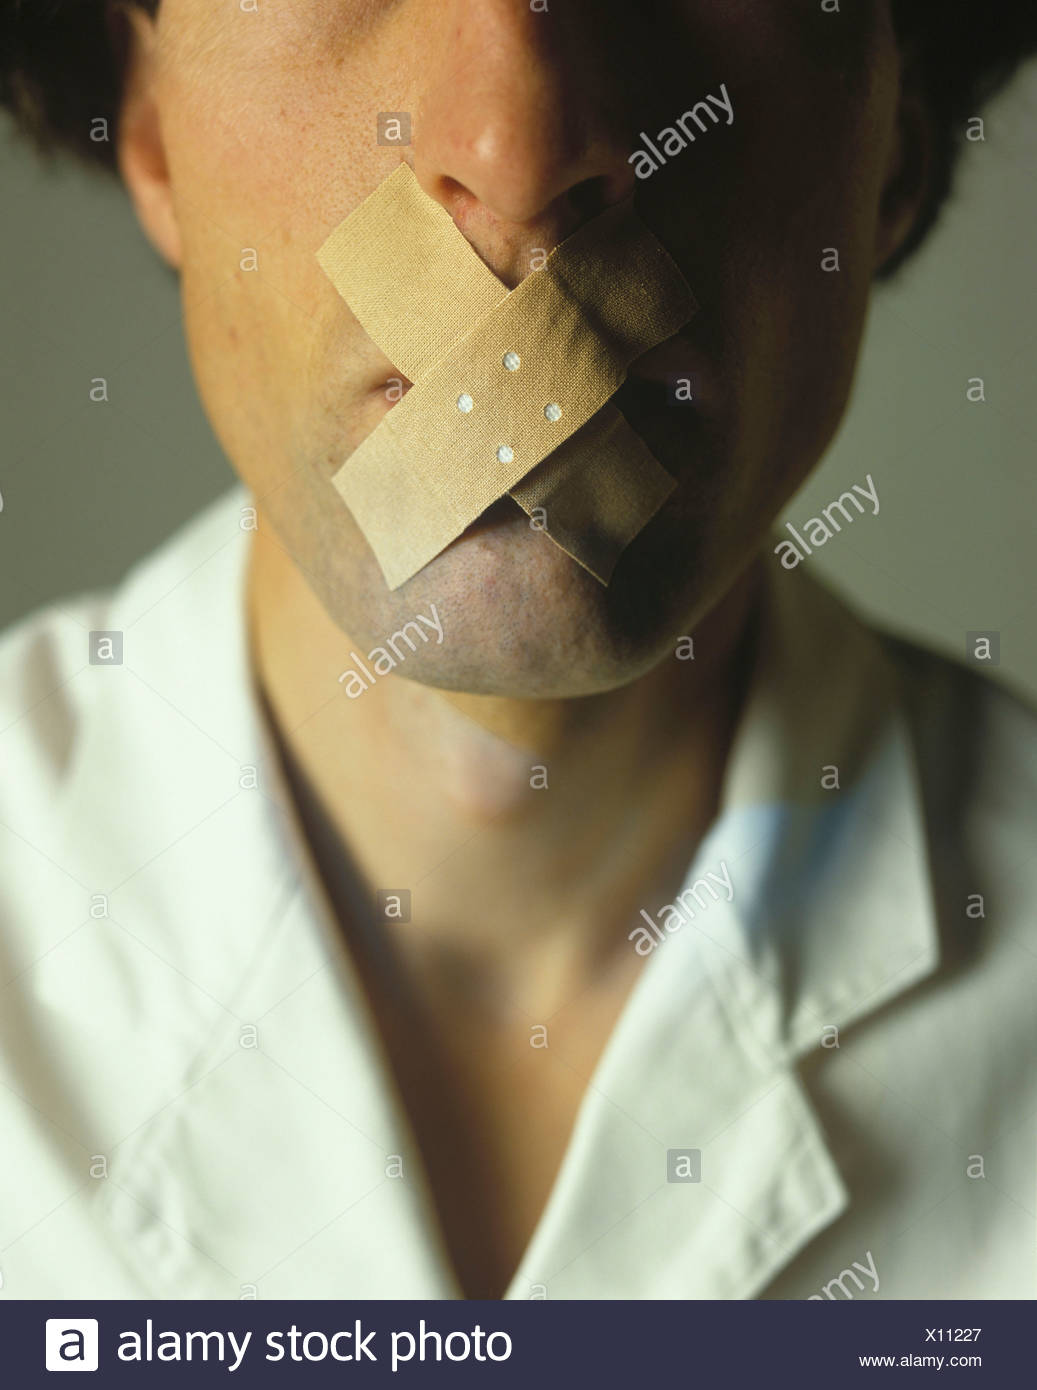 doctor toggle plaster talk rest silence oath of secrecy silence calmness ban forbidden - Stock Image